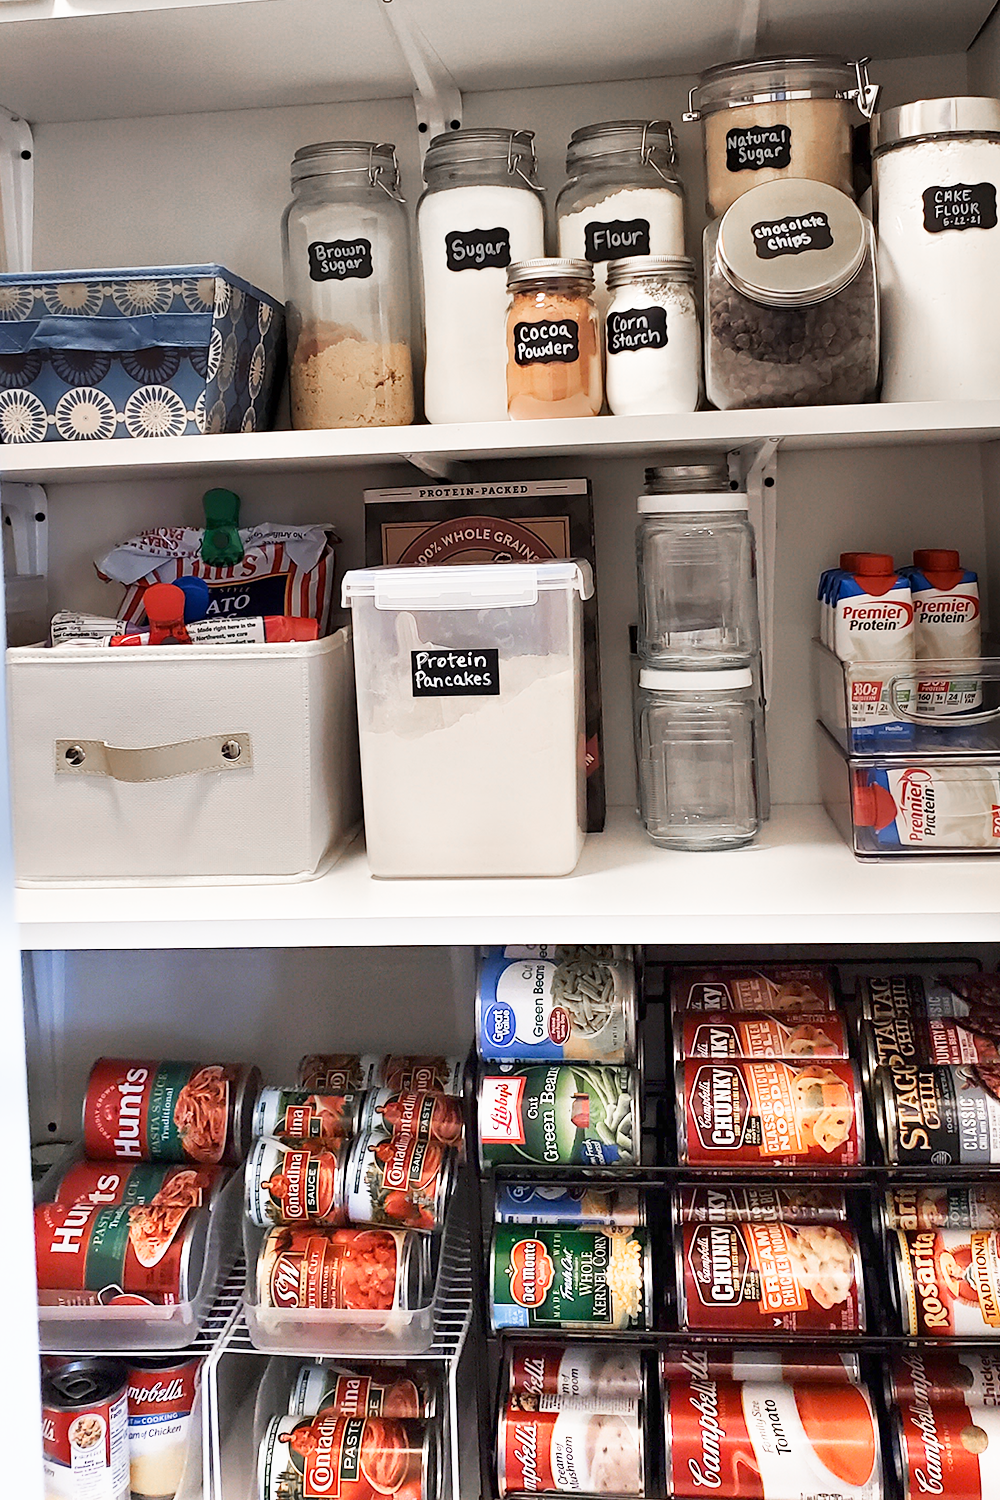 I want to share with you how you can organize your pantry on a budget. You can do everything you need to do, not spend a penny more than you have to, and enjoy a pantry that serves you and your family's needs.